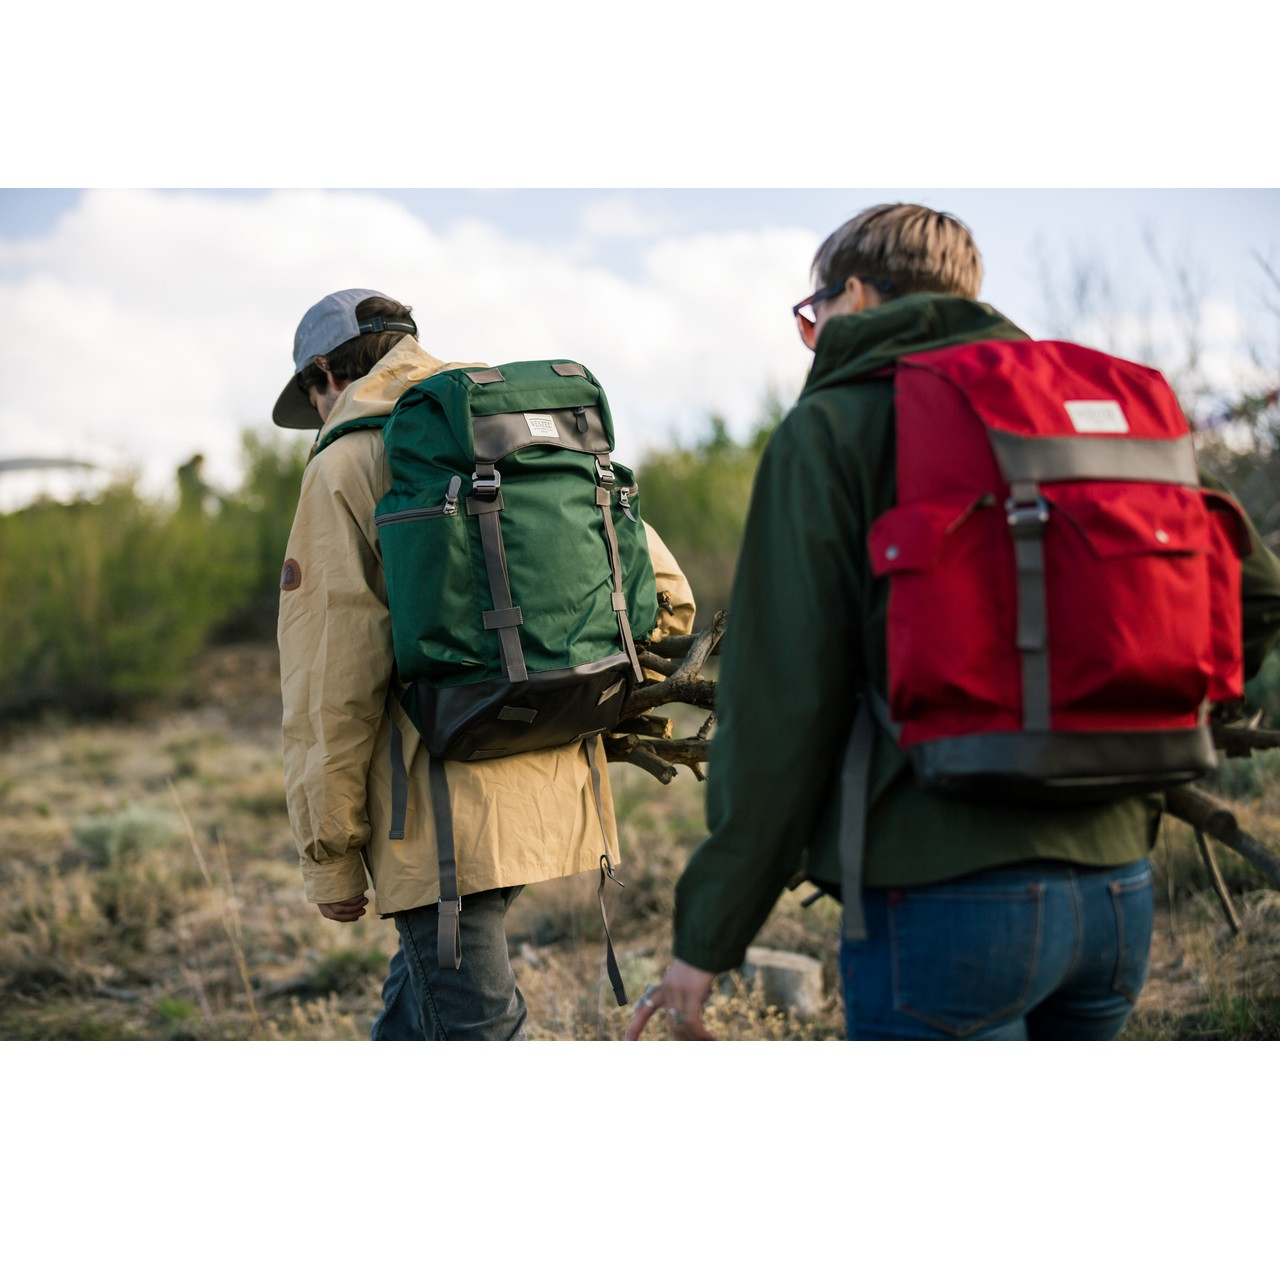 Man and woman hiking outside both wearing Wenzel Boulderdasche 33 packs